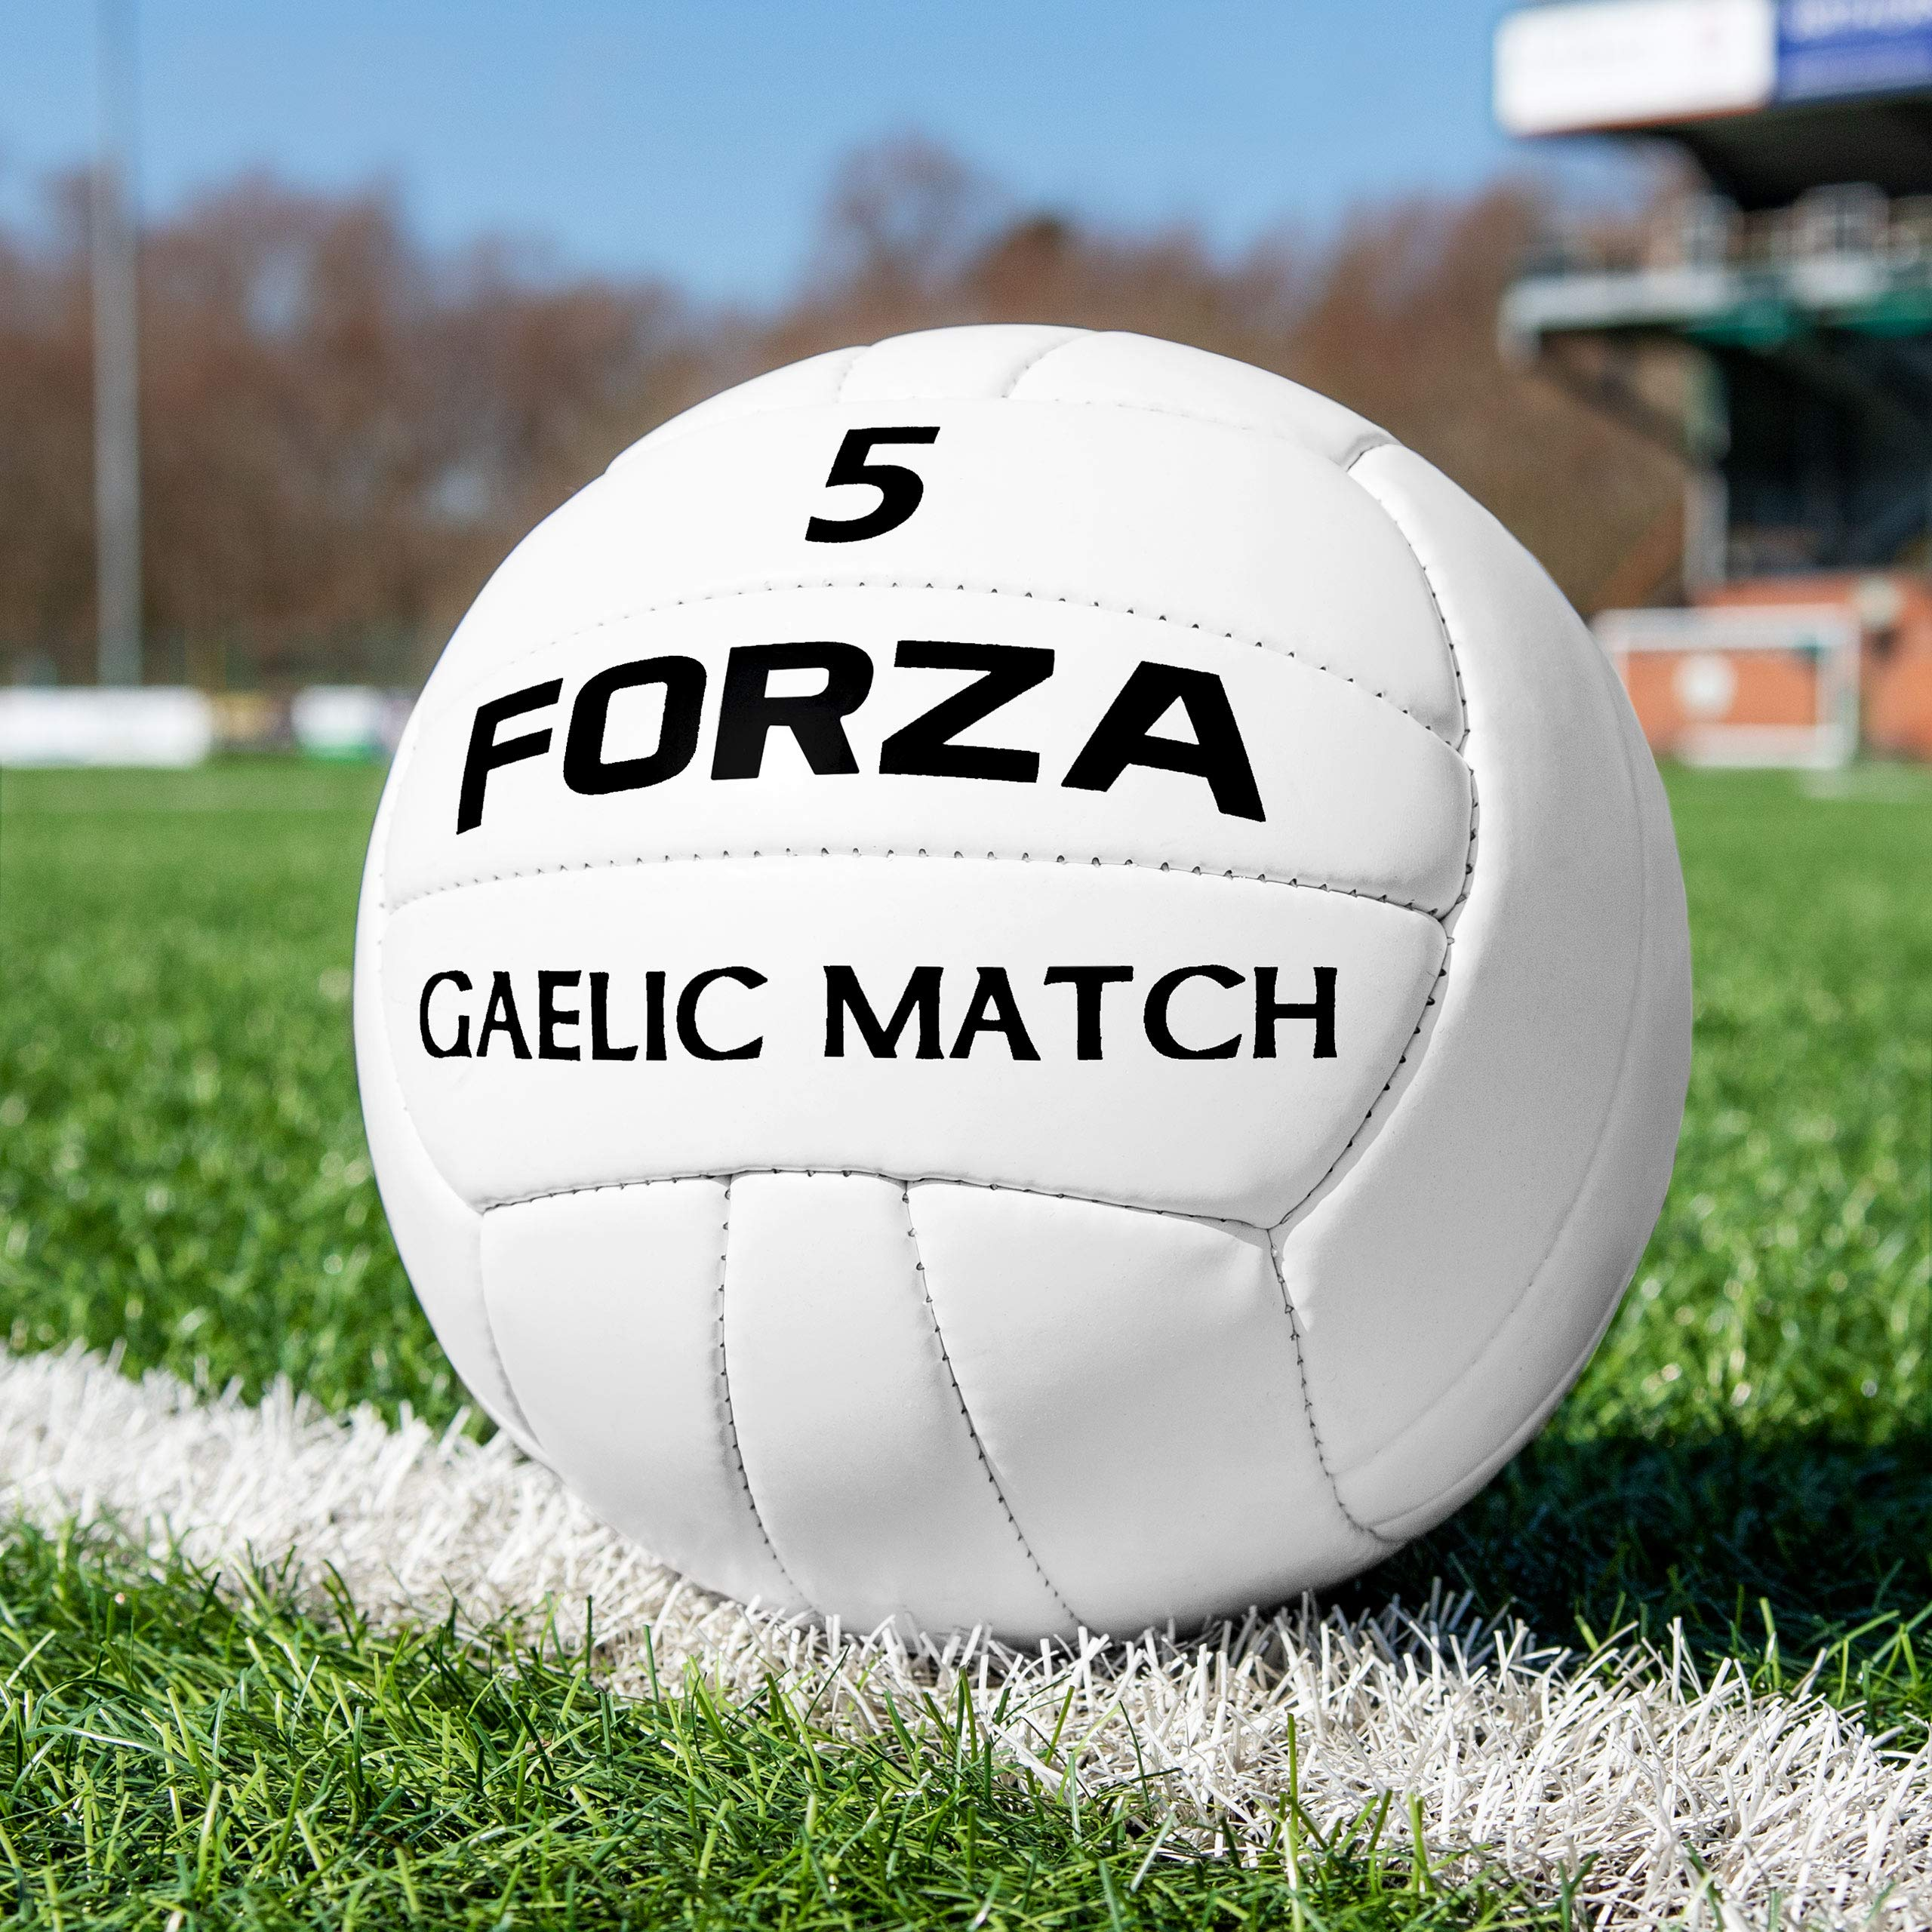 Forza Gaelic Match Football | Official Size | 100% Hand Stitched (Size 4, Pack of 1)